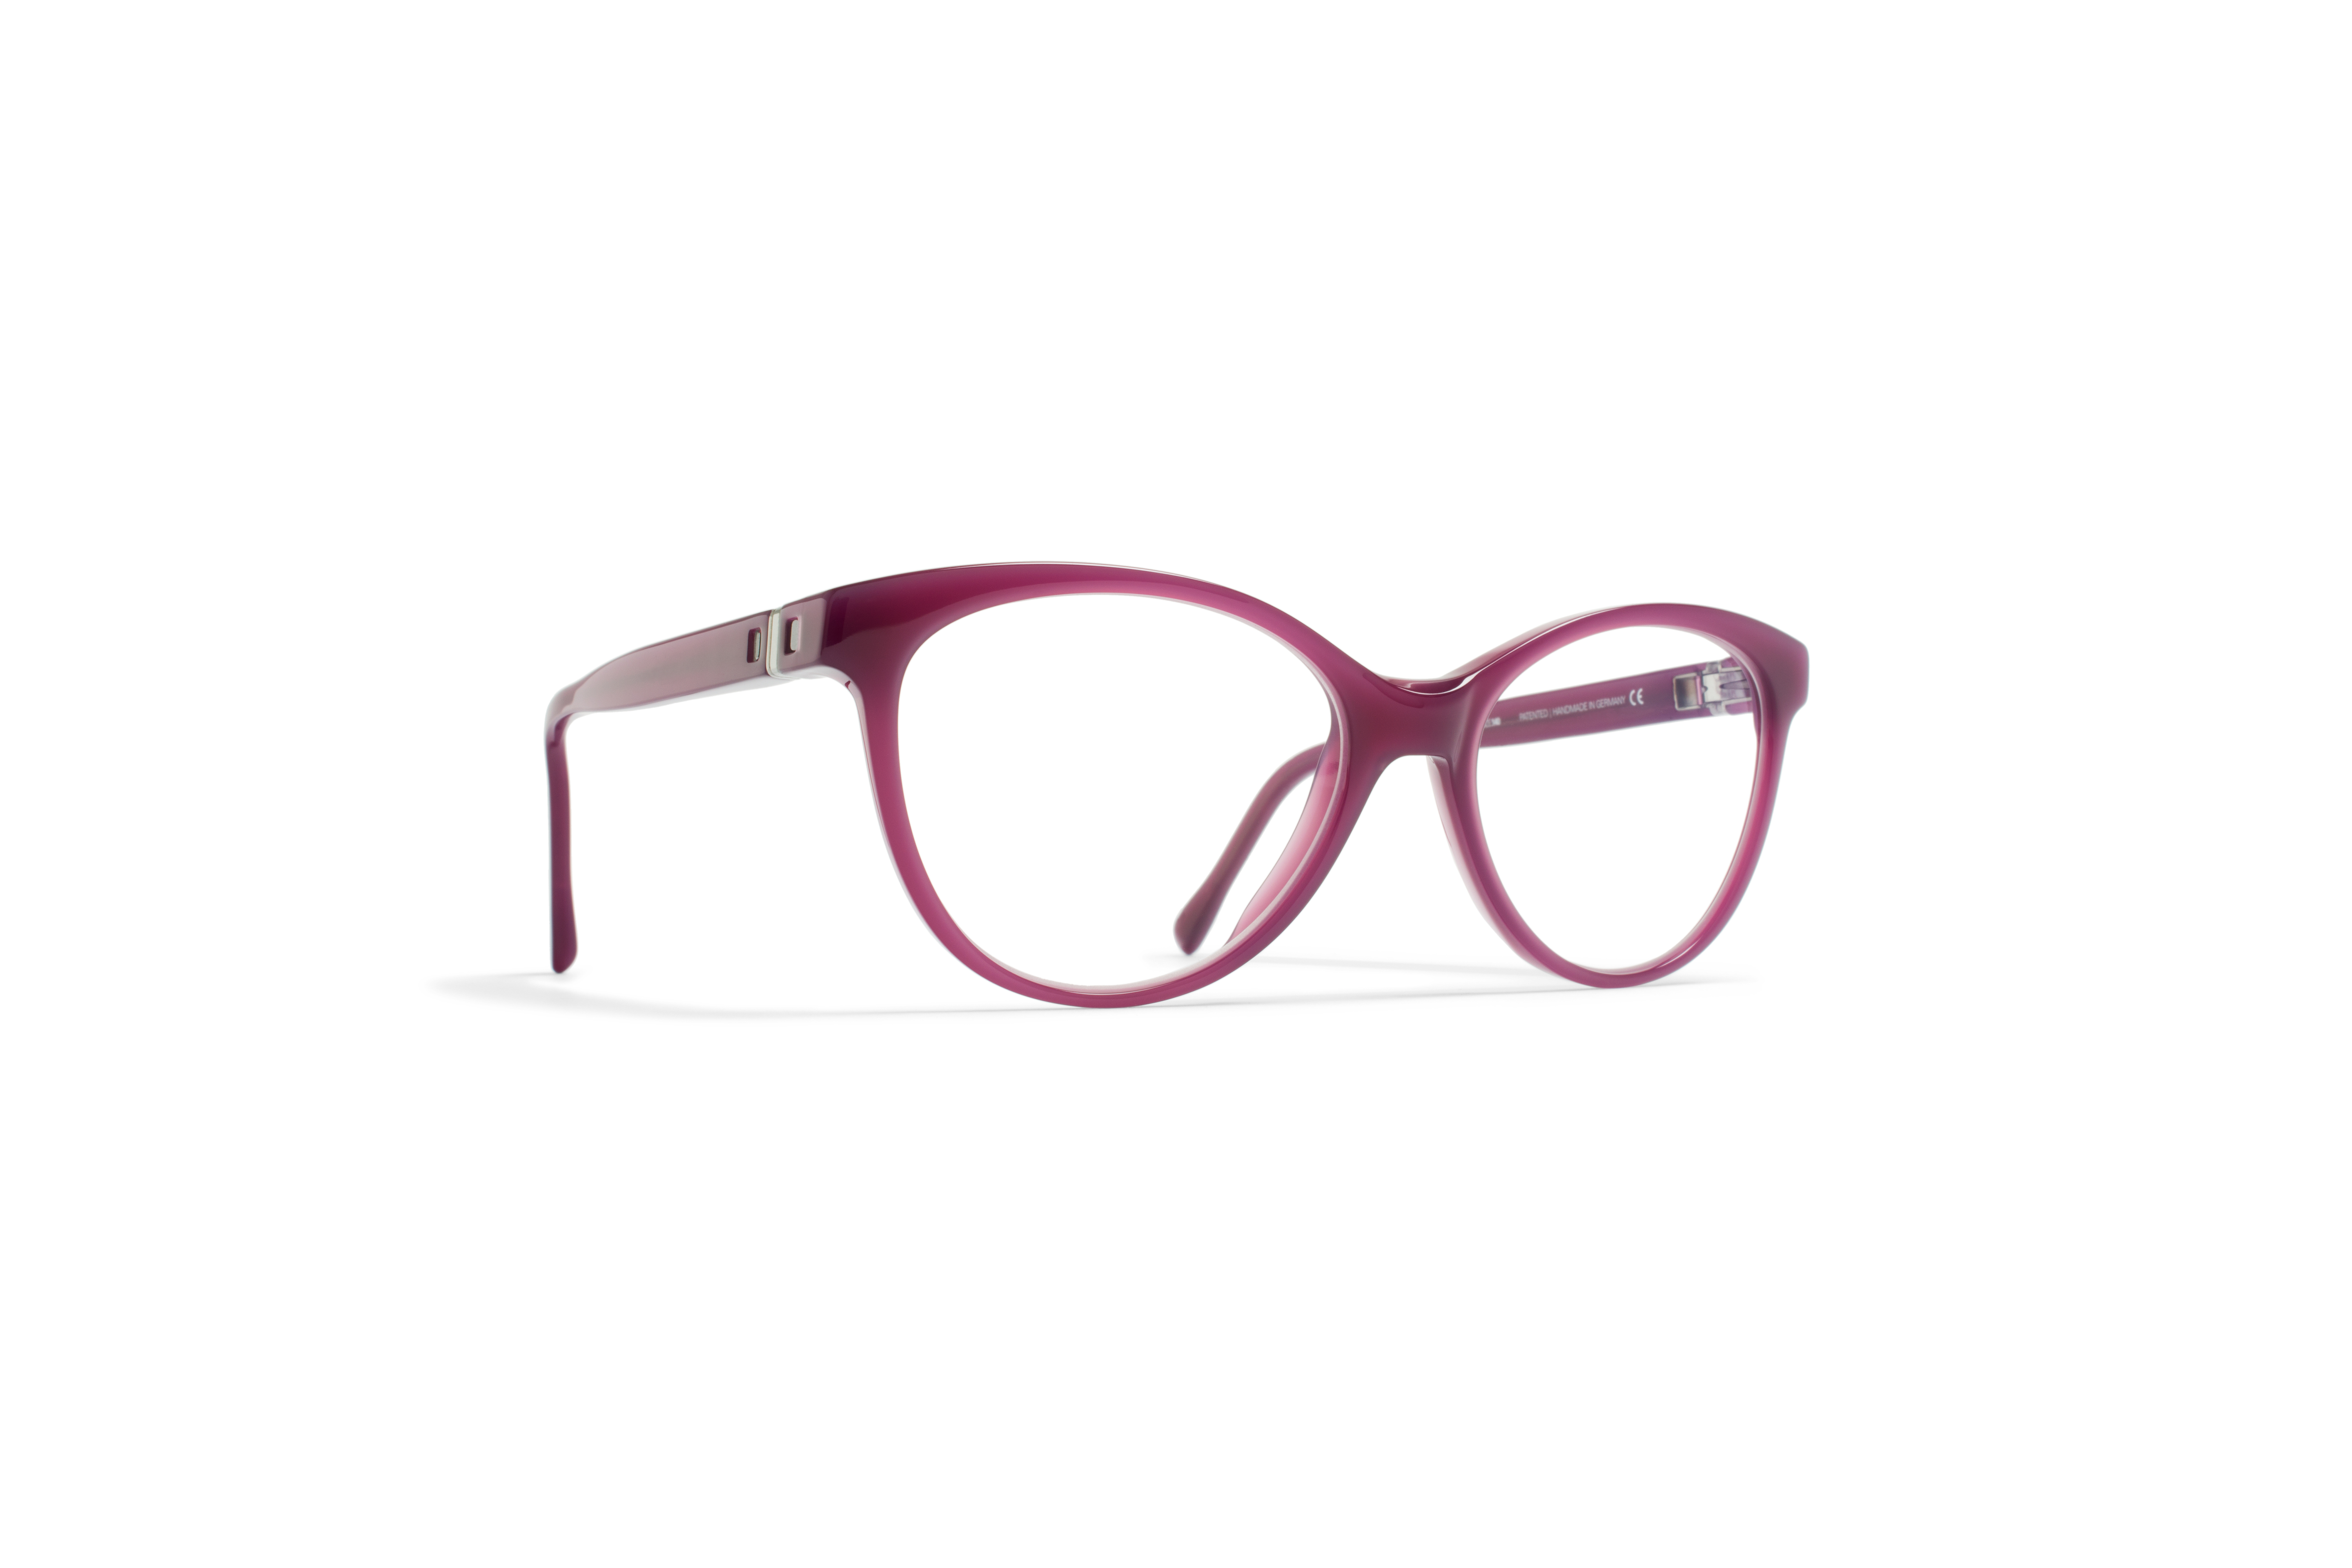 MYKITA No2 Rx Bianca Misty Clear